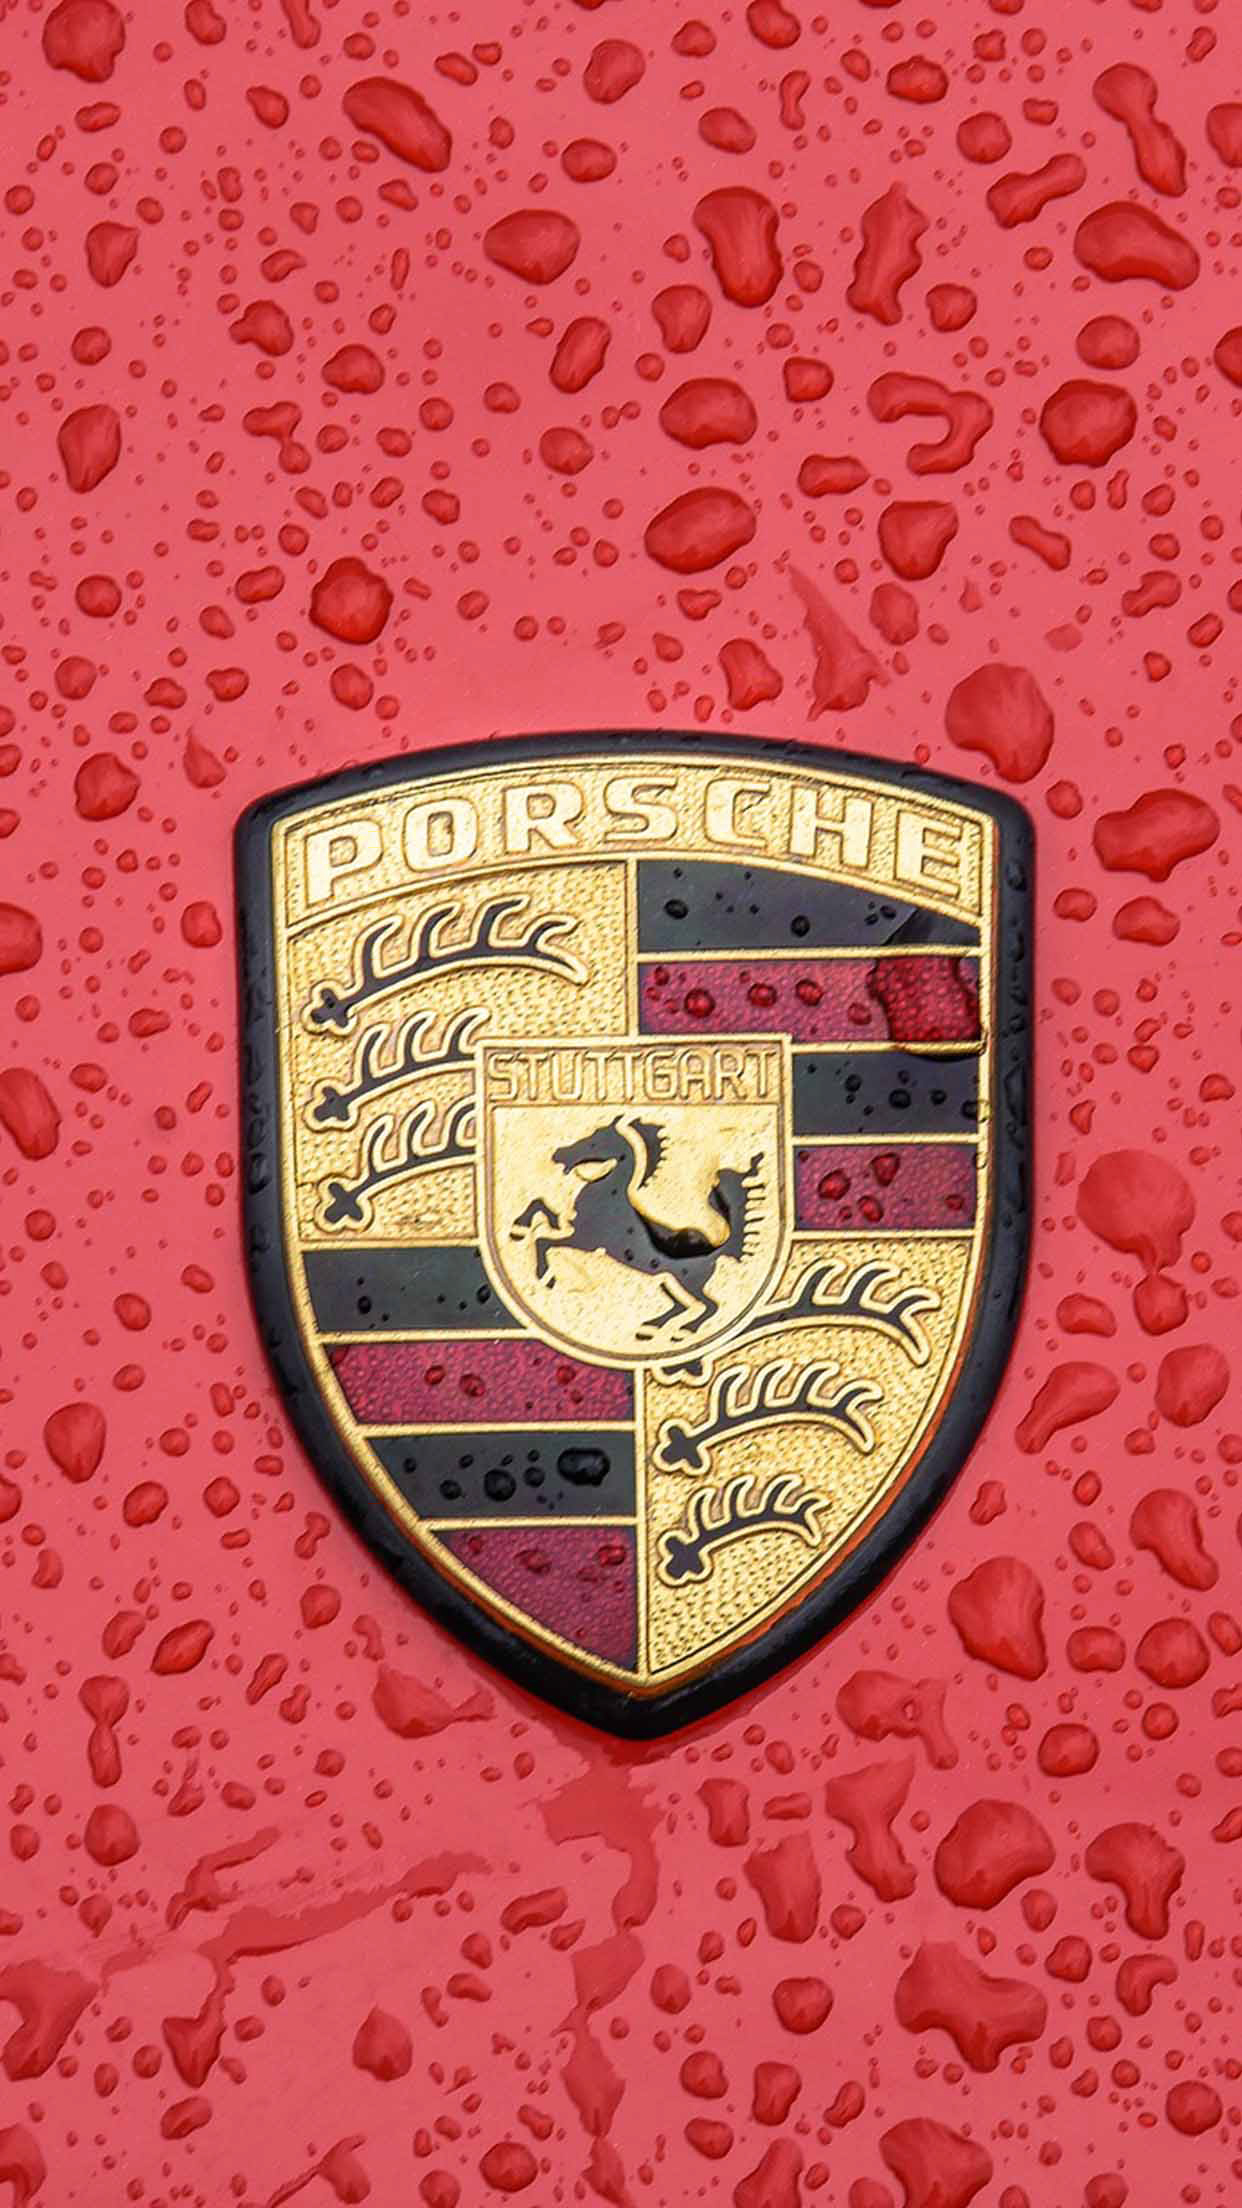 Porsche red logo with rain